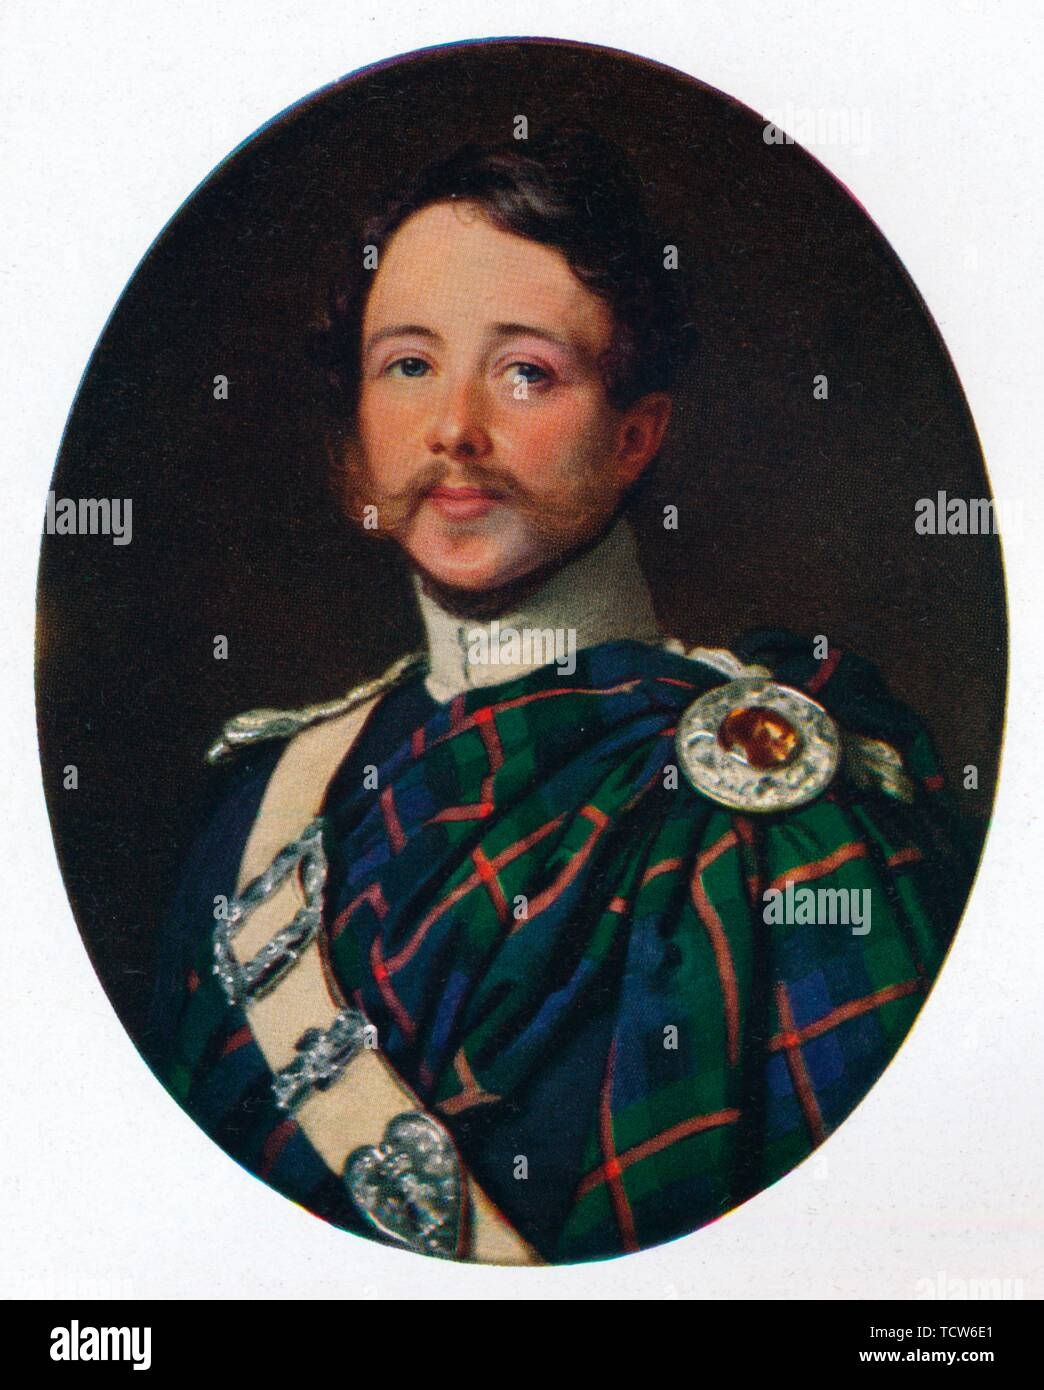 "George Murray, 6th Duke of Atholl, c1850, (1930). Portrait of George Augustus Frederick John Murray, 6th Duke of Atholl (1814-1864), who provided for the construction of a piped water supply to the town of Dunkeld in Perthshire, Scotland. Murray was a lieutenant of the 2nd Dragoon Guards in the British Army. From ""The Connoisseur"", Volume 86, edited by C. Reginald Grundy. [The Connoisseur Ltd, London, 1930] - Stock Image"